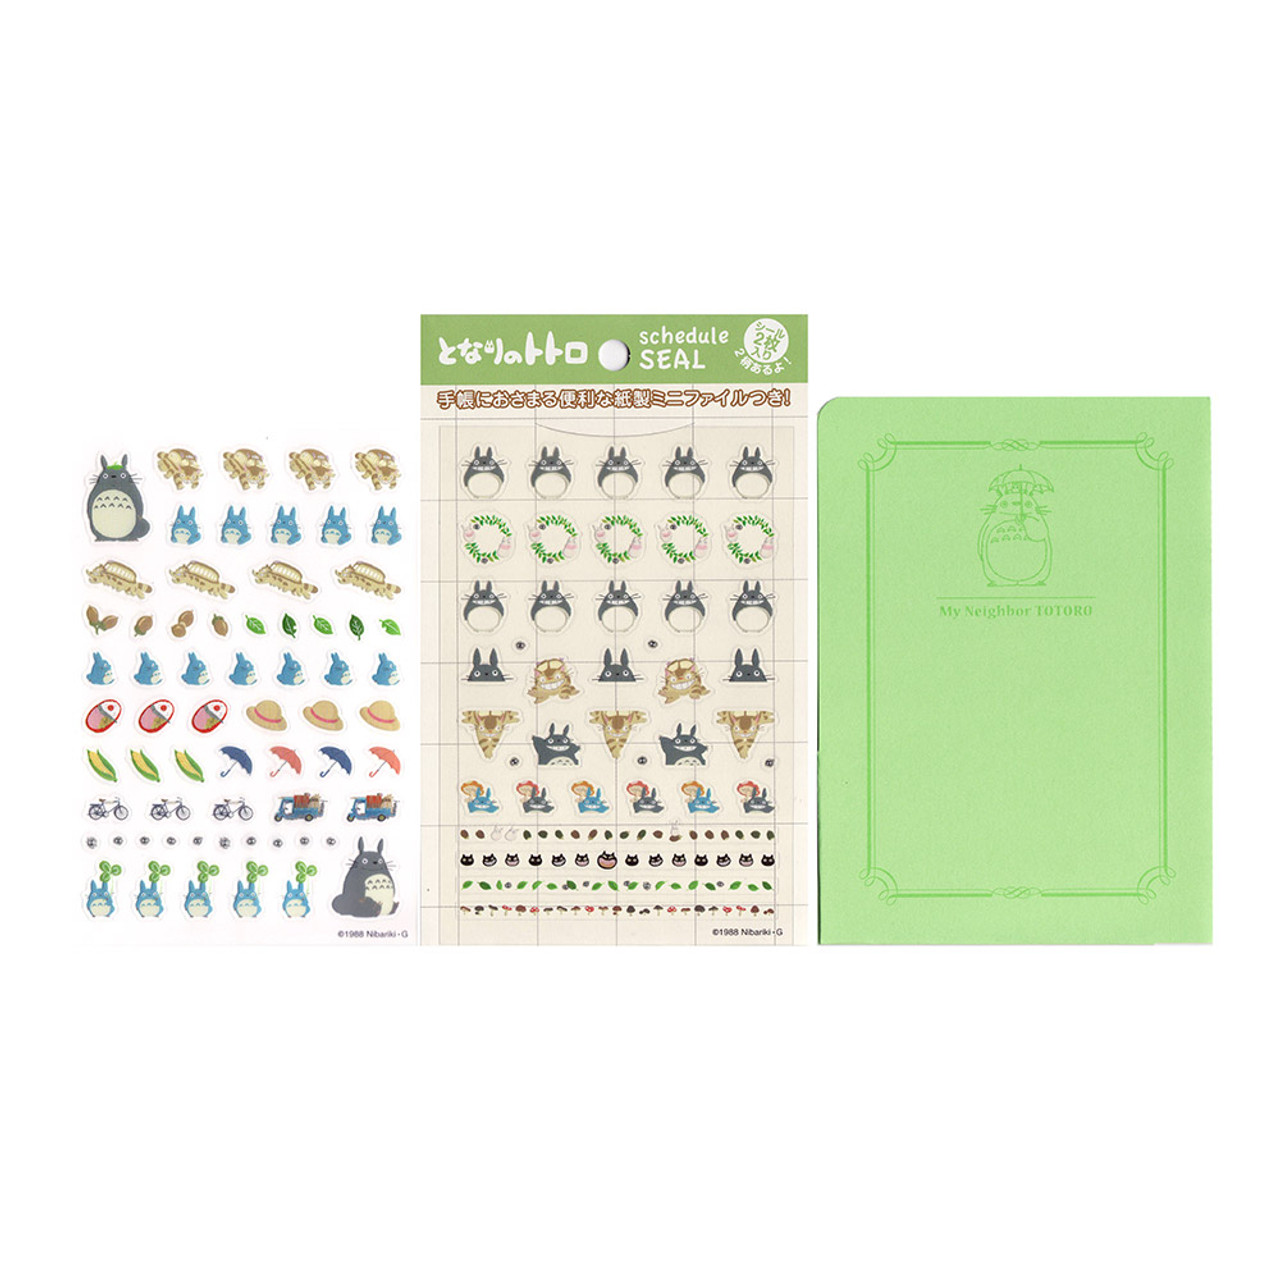 Totoro Schedule Seal 2 Style Sticker Sheet ( Full Set )